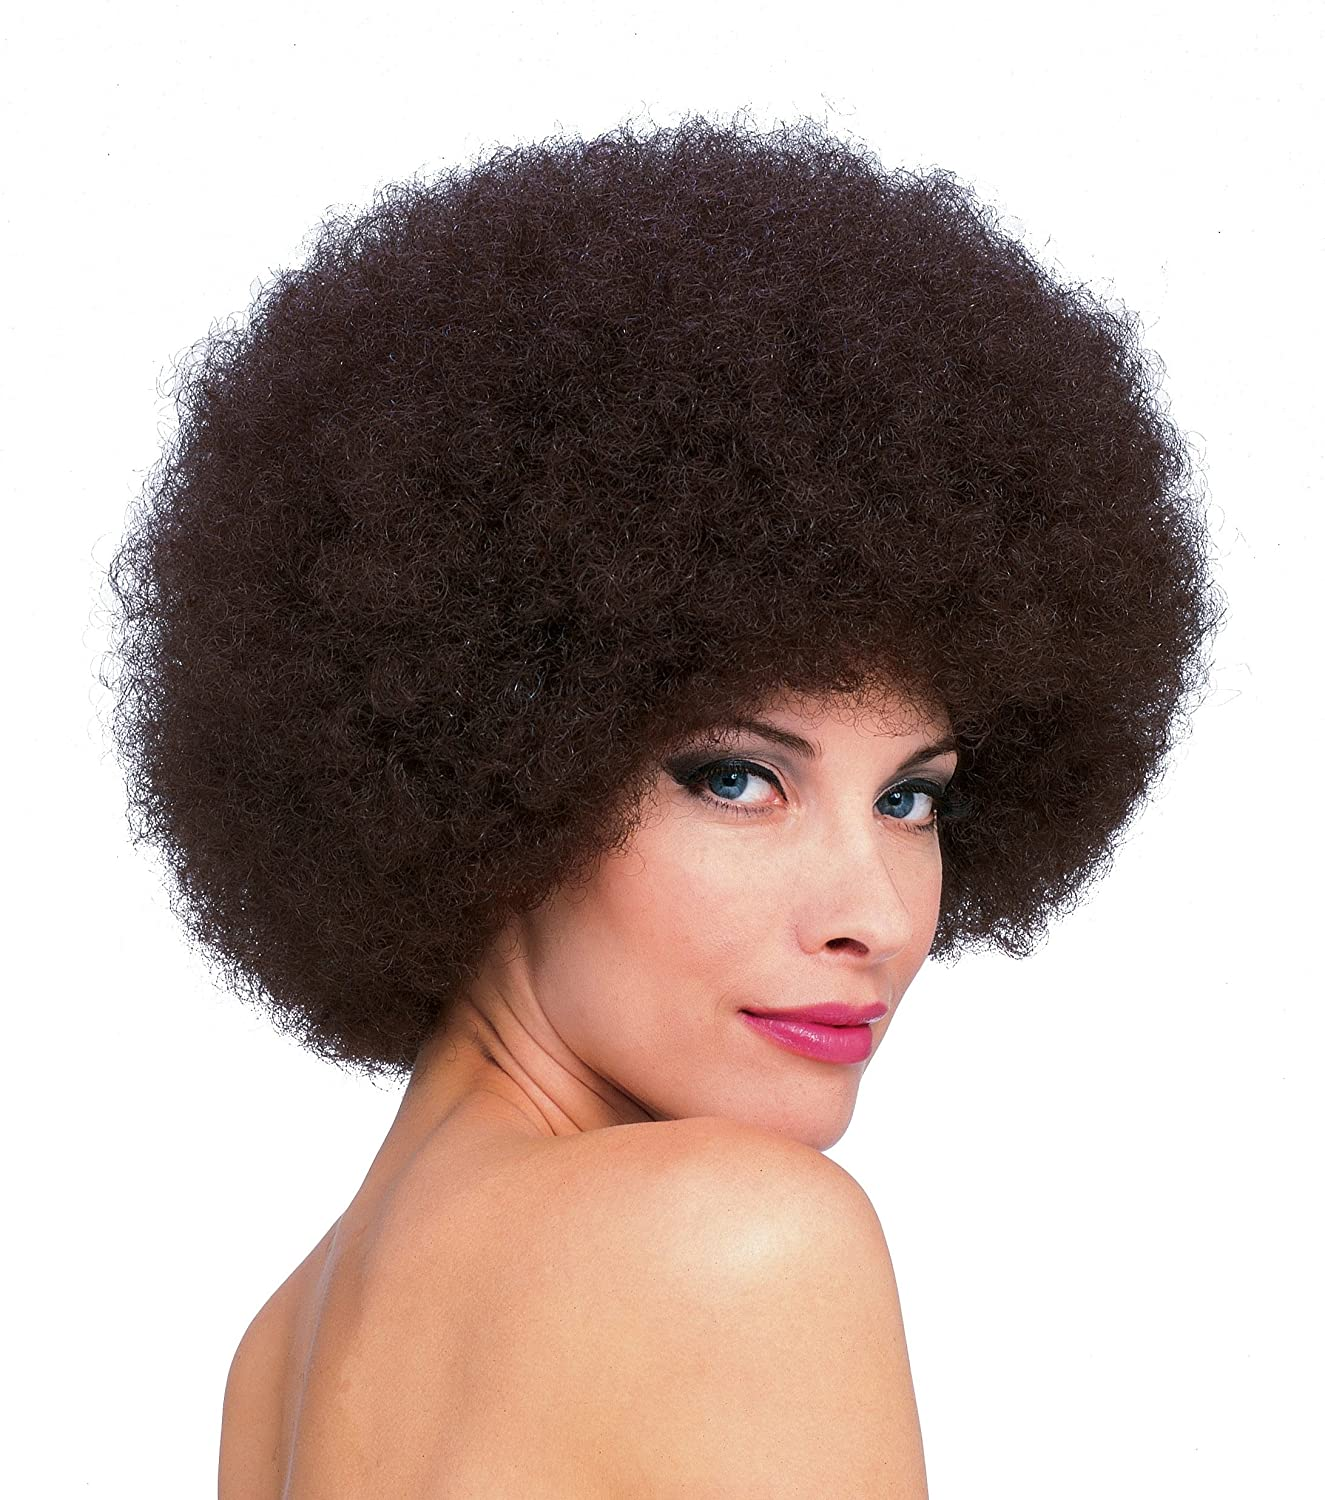 Afro Wig No Head | www.pixshark.com - Images Galleries